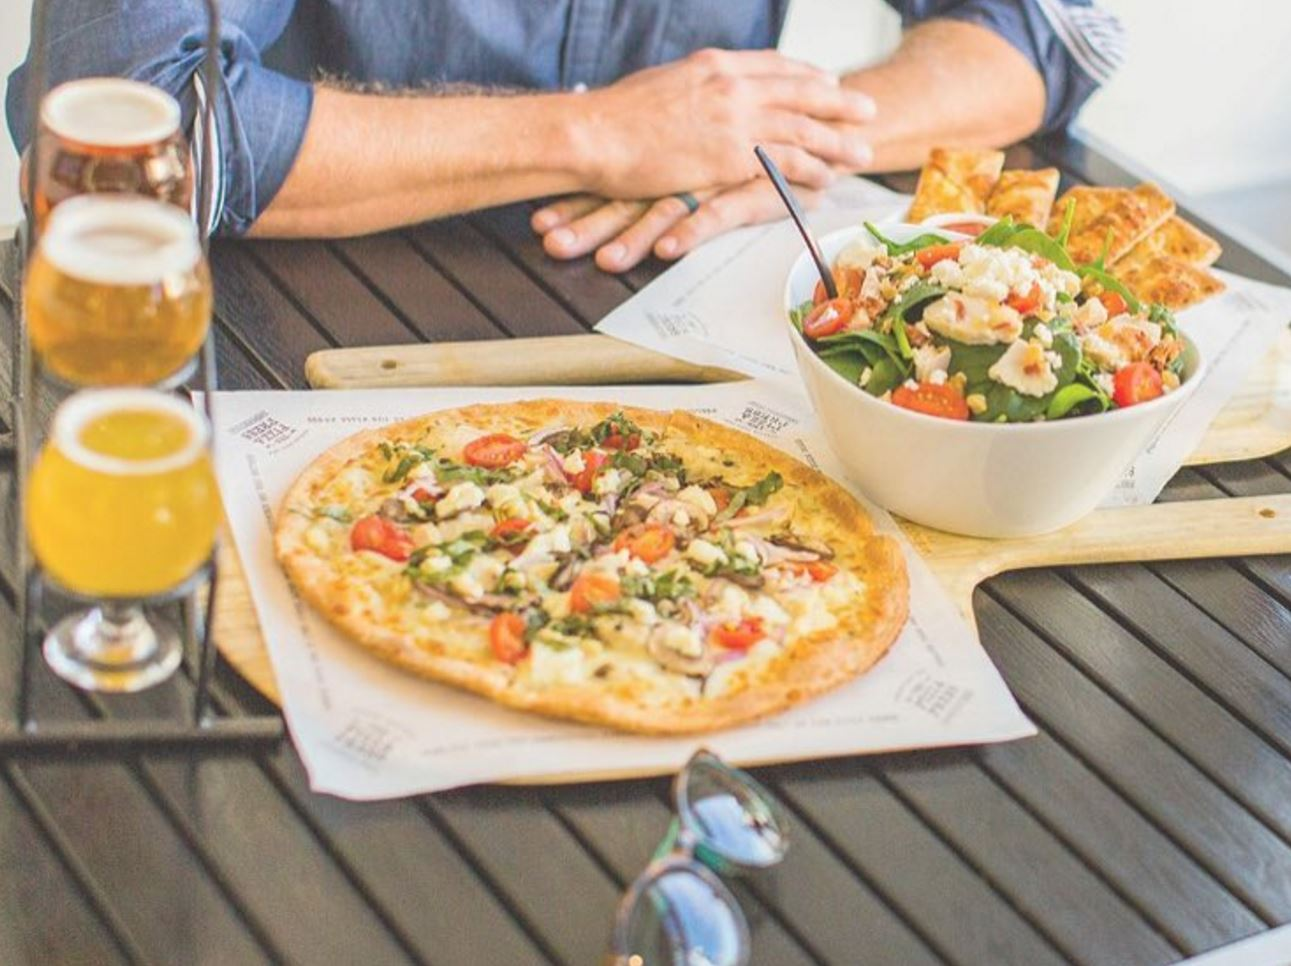 April 20 | Free Pizzas From The Pizza Press All Day In Huntington Beach